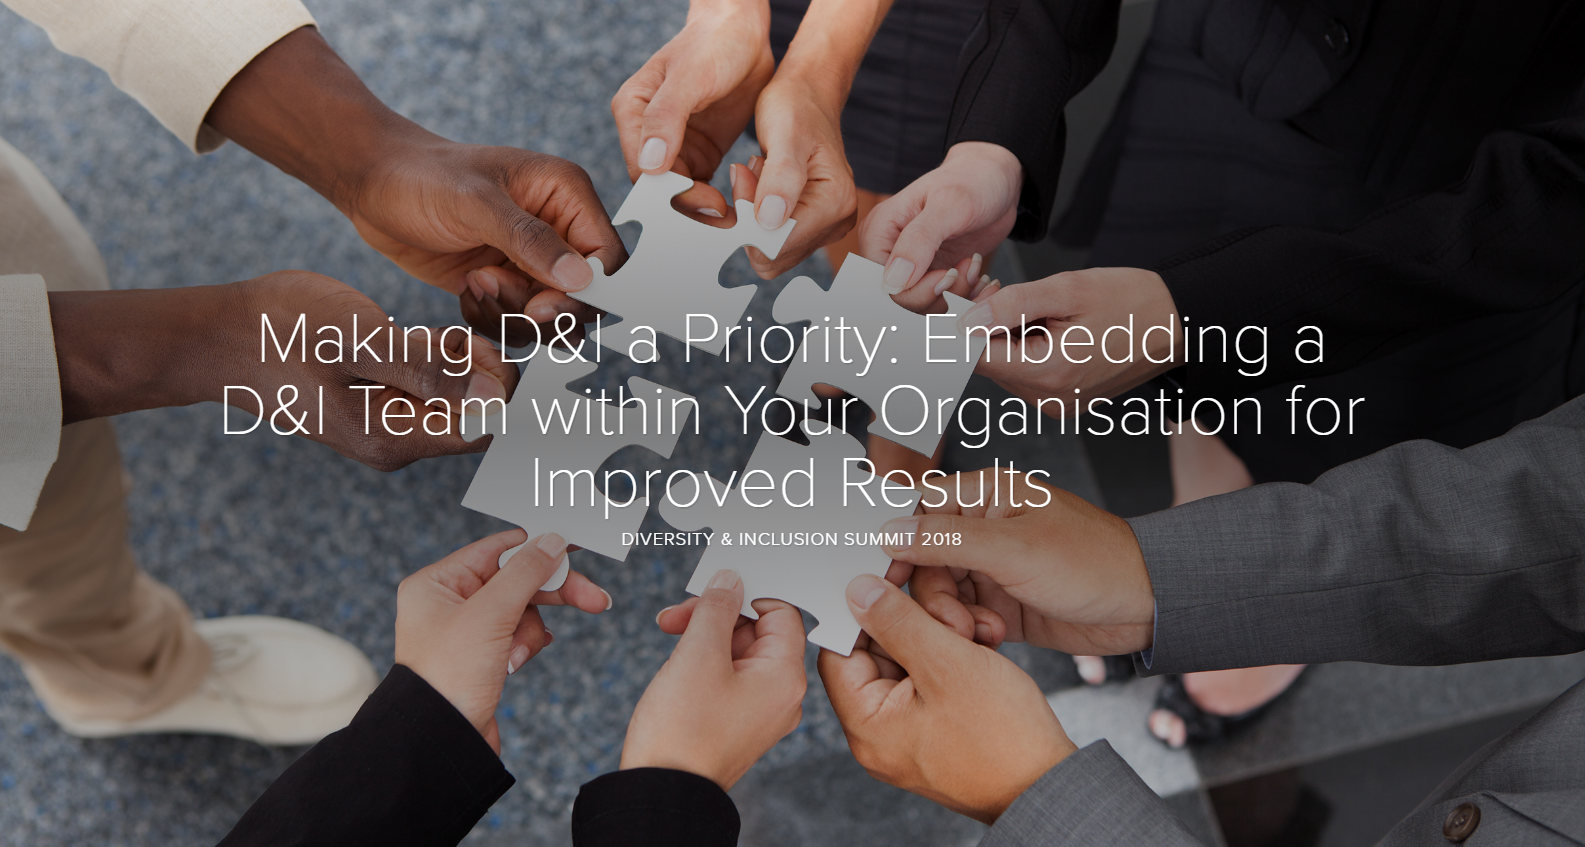 Making D&I a Priority: Embedding a D&I Team within Your Organisation for Improved Results